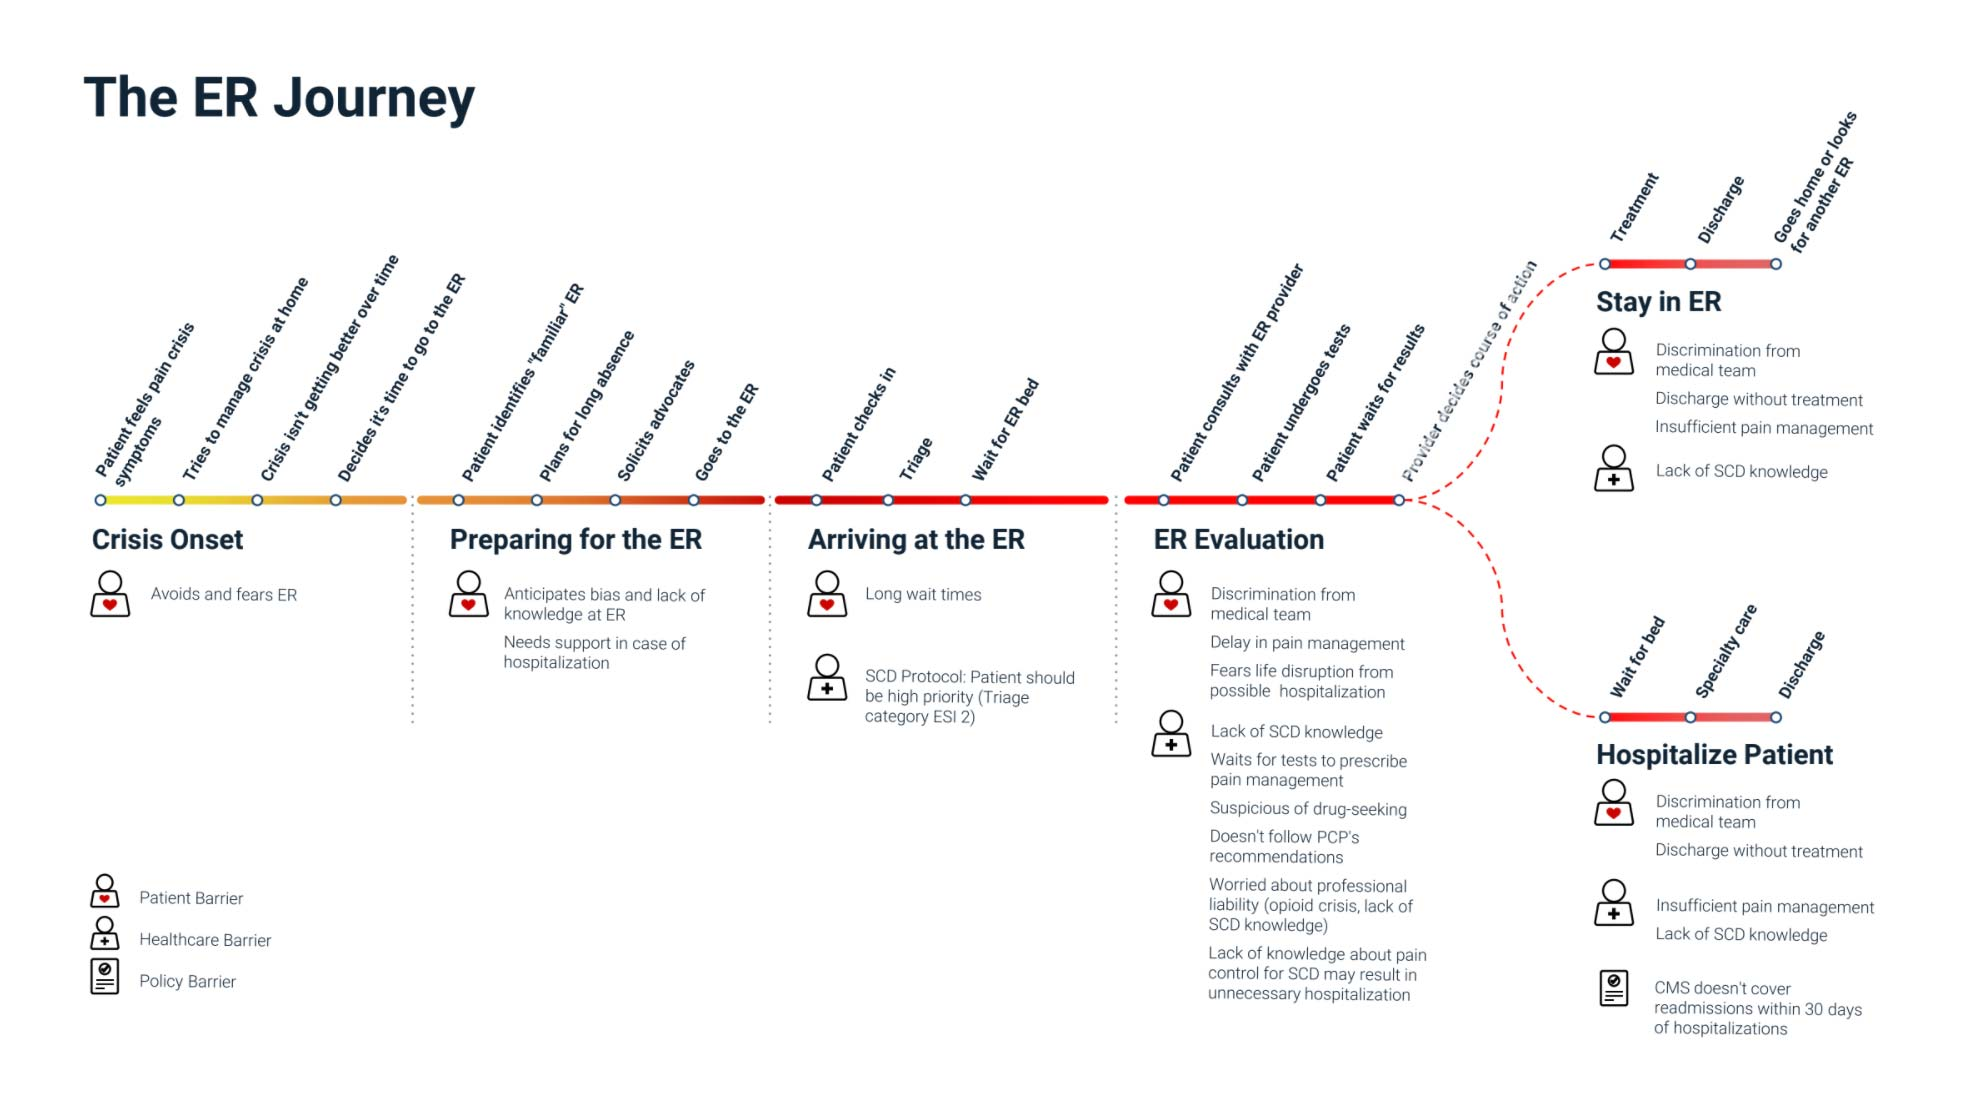 Timeline of an ER journey for a patient that diverges at the end for if someone stays in the ER or becomes hospitalized.